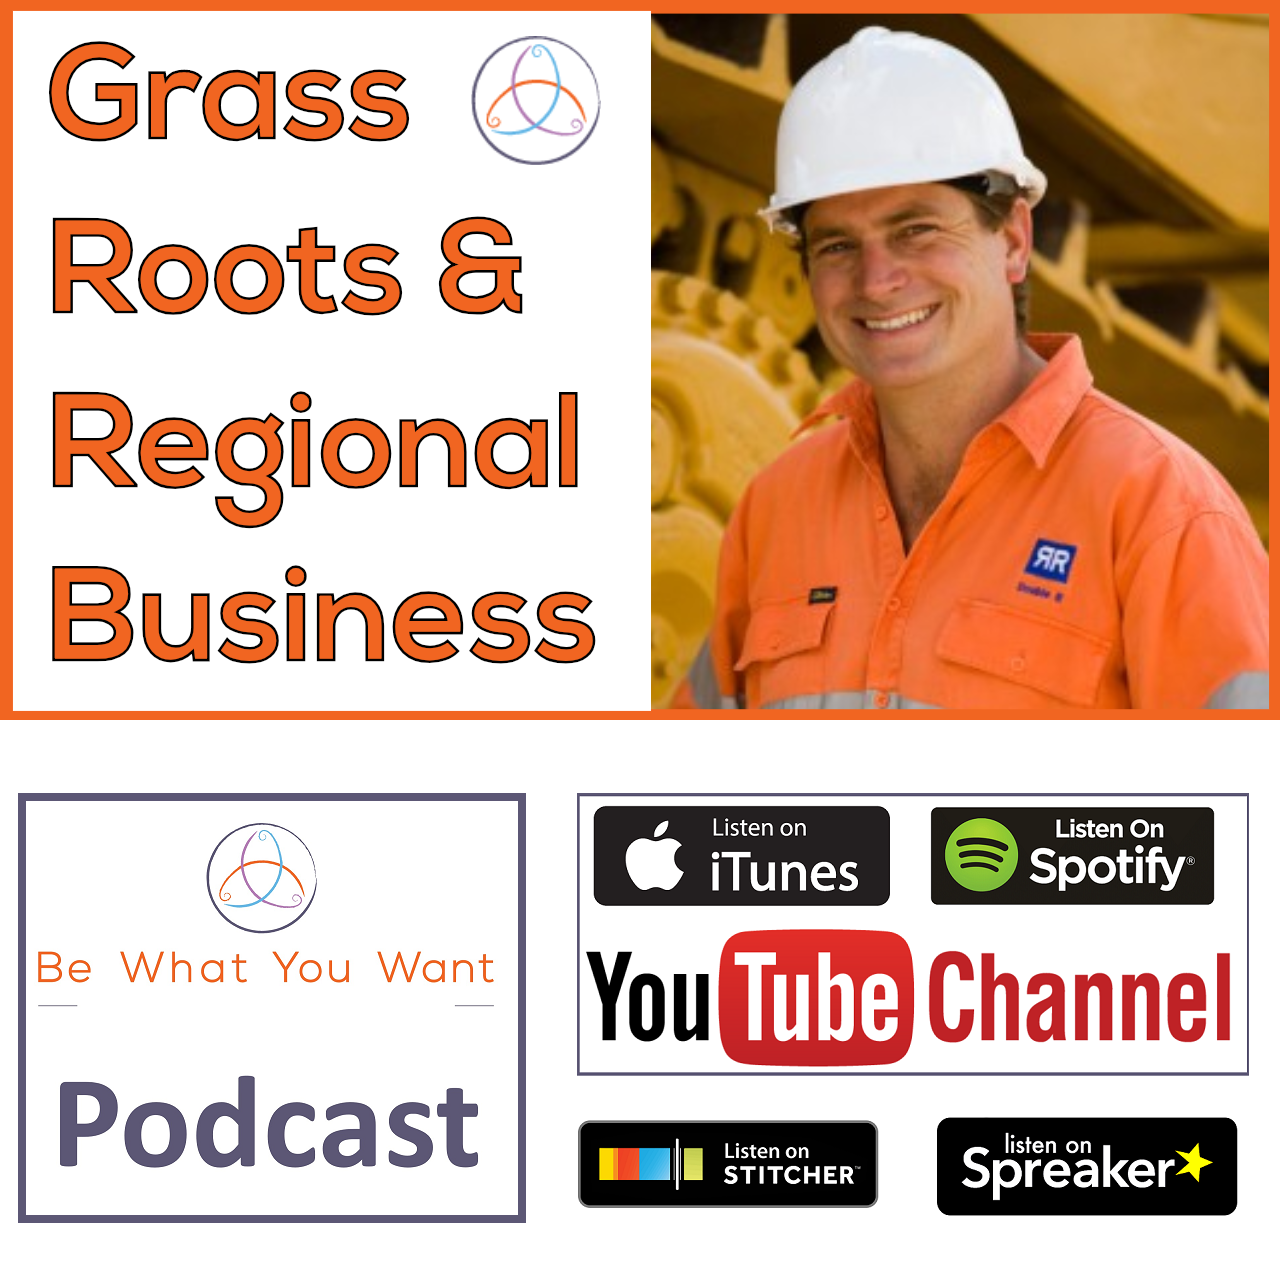 Grass Roots & Regional Business - Rusty Russell